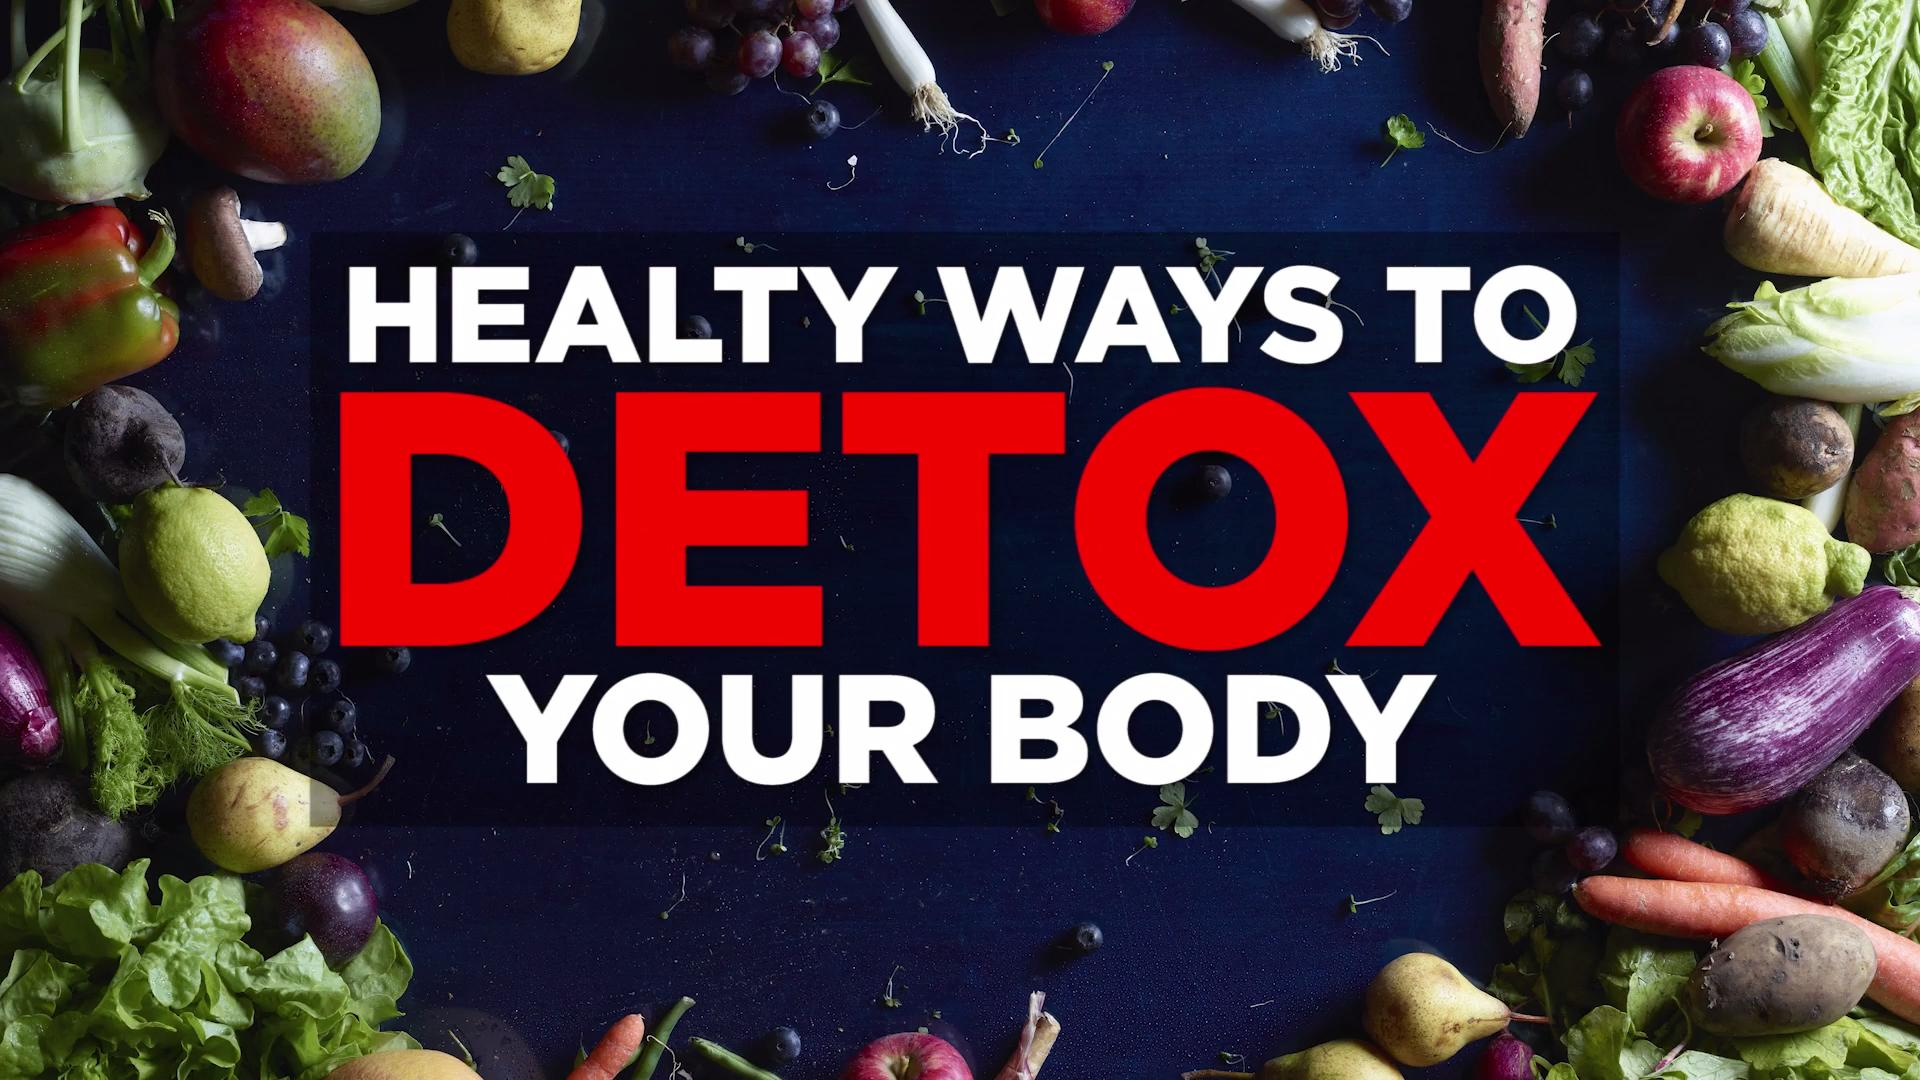 This Is The Best Way to Detox Your Body - Health